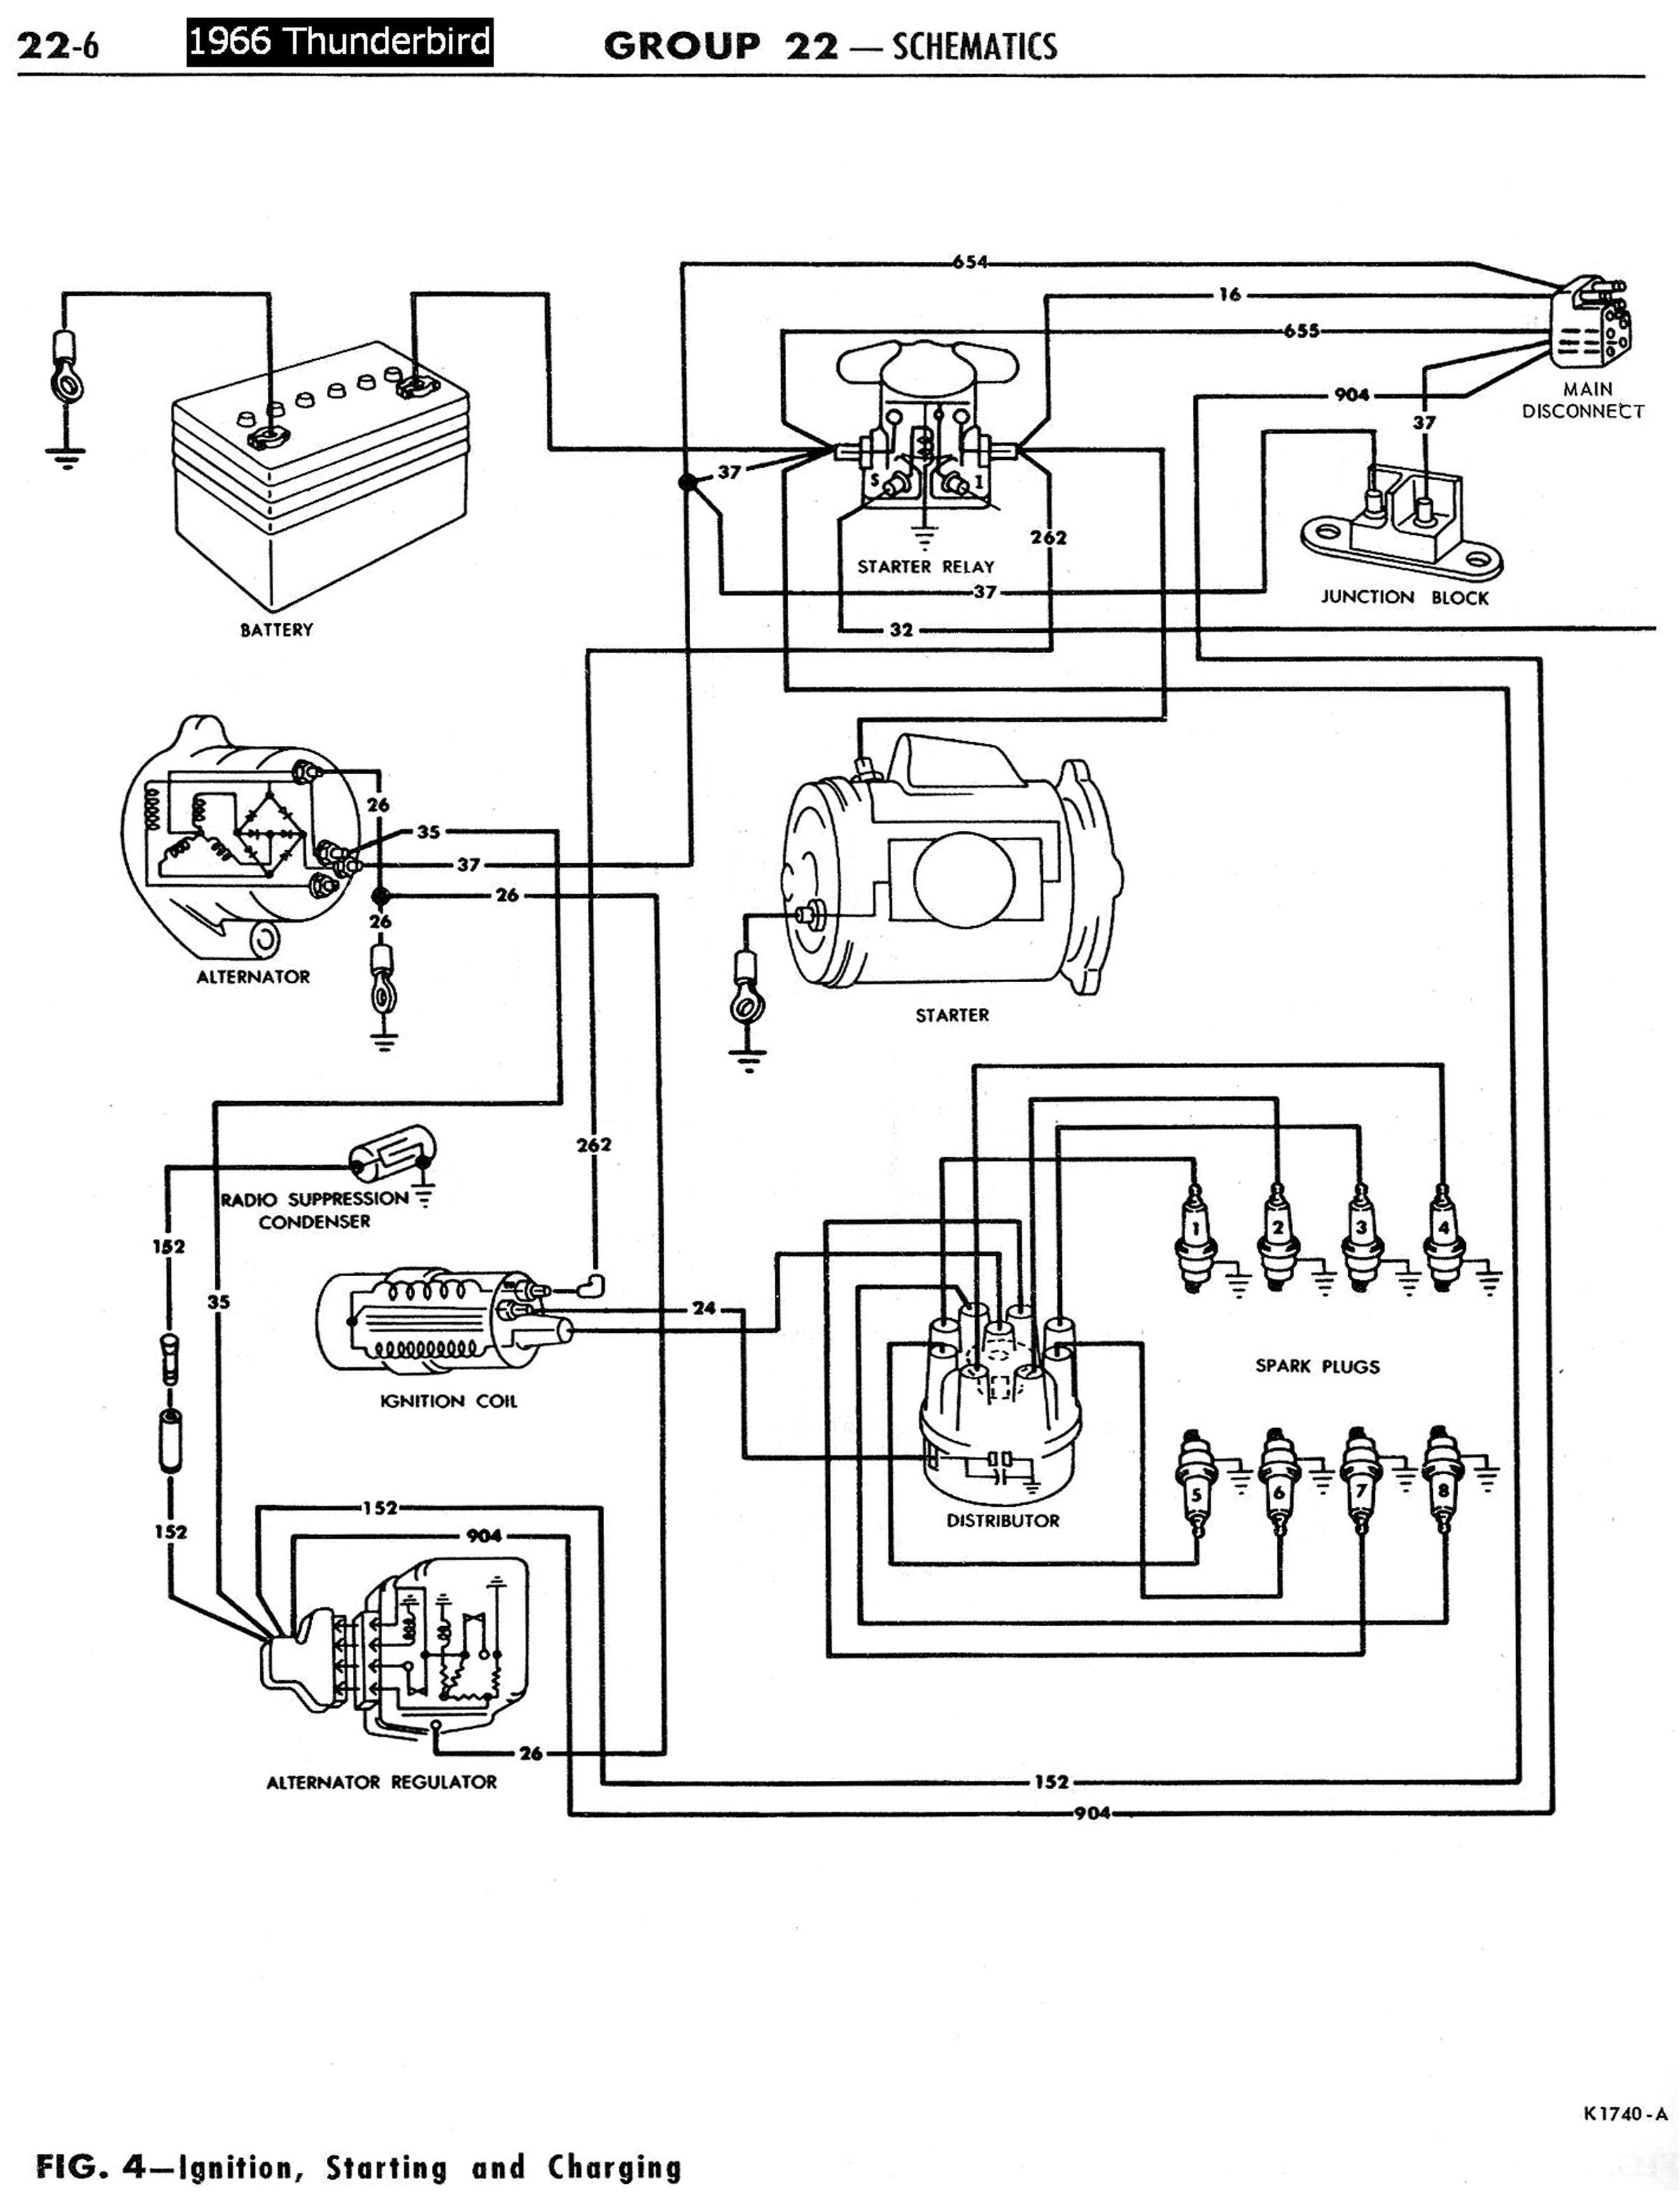 97 s10 ignition switch wiring diagram